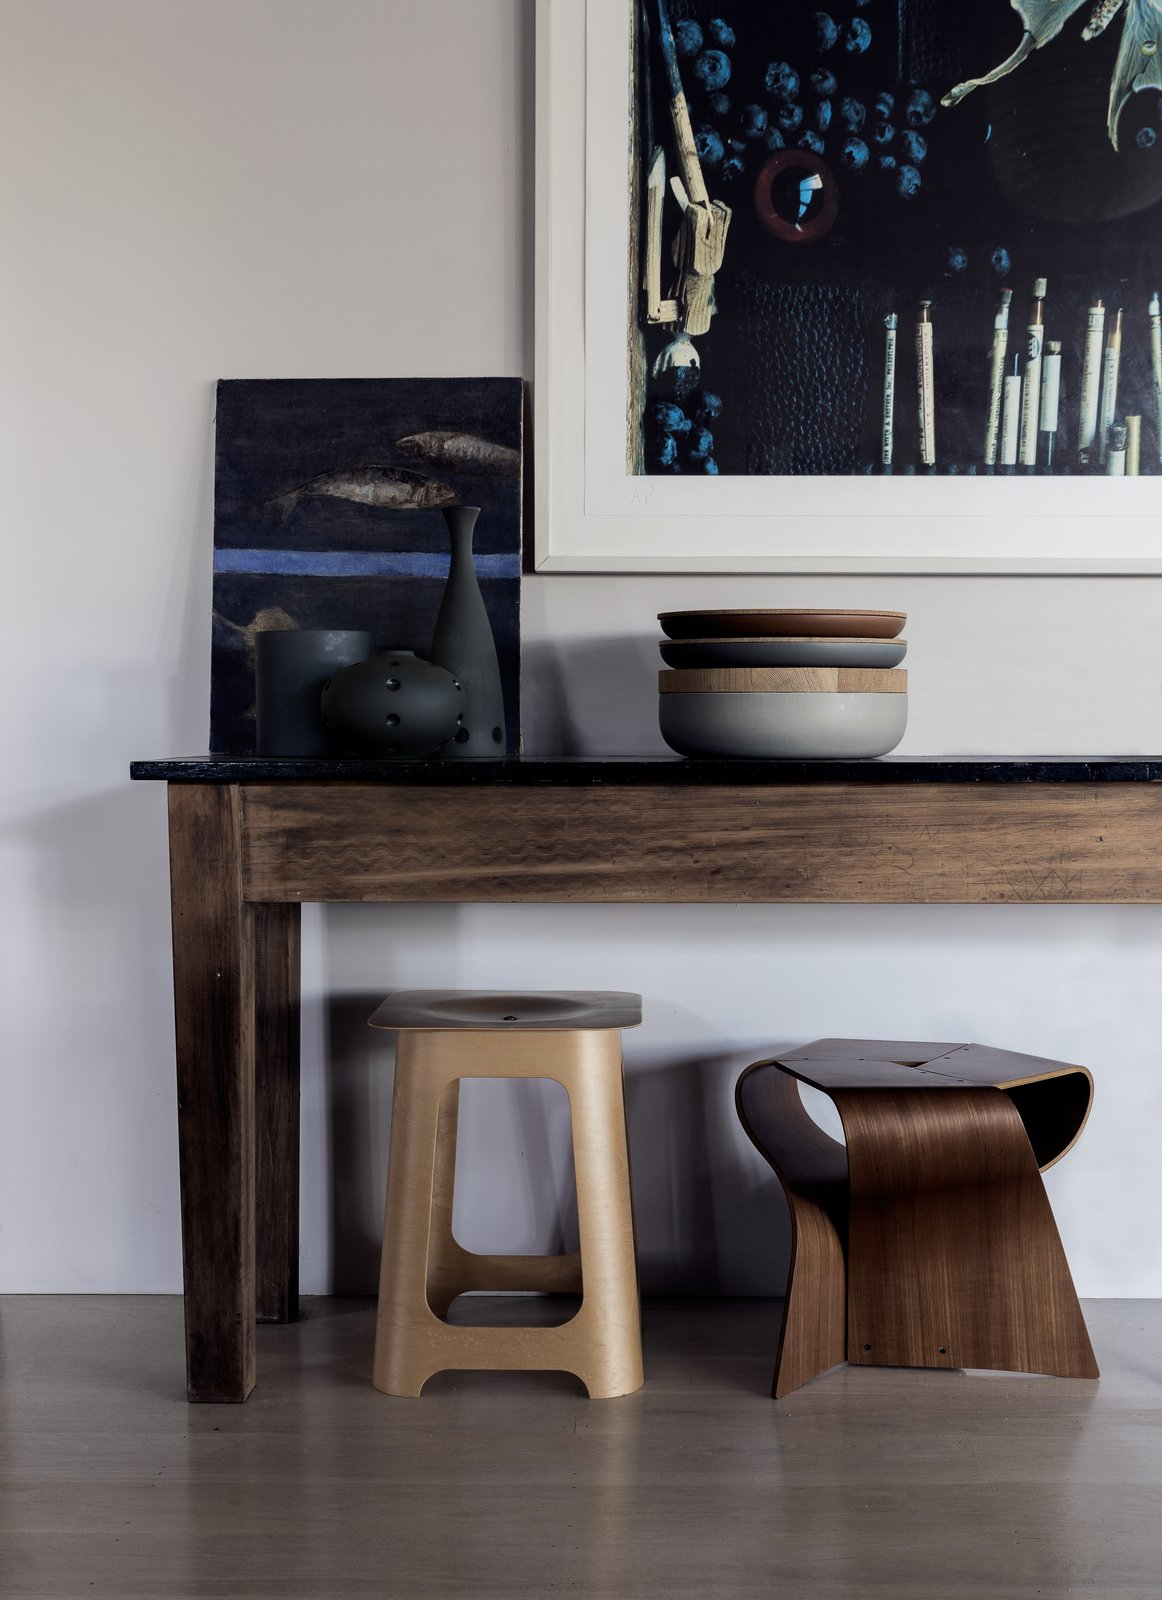 Living Room, Stools, Console Tables, and Light Hardwood Floor  Photo 12 of 13 in Stay in a Riverside Vacation Home That Embraces the Australian Bush